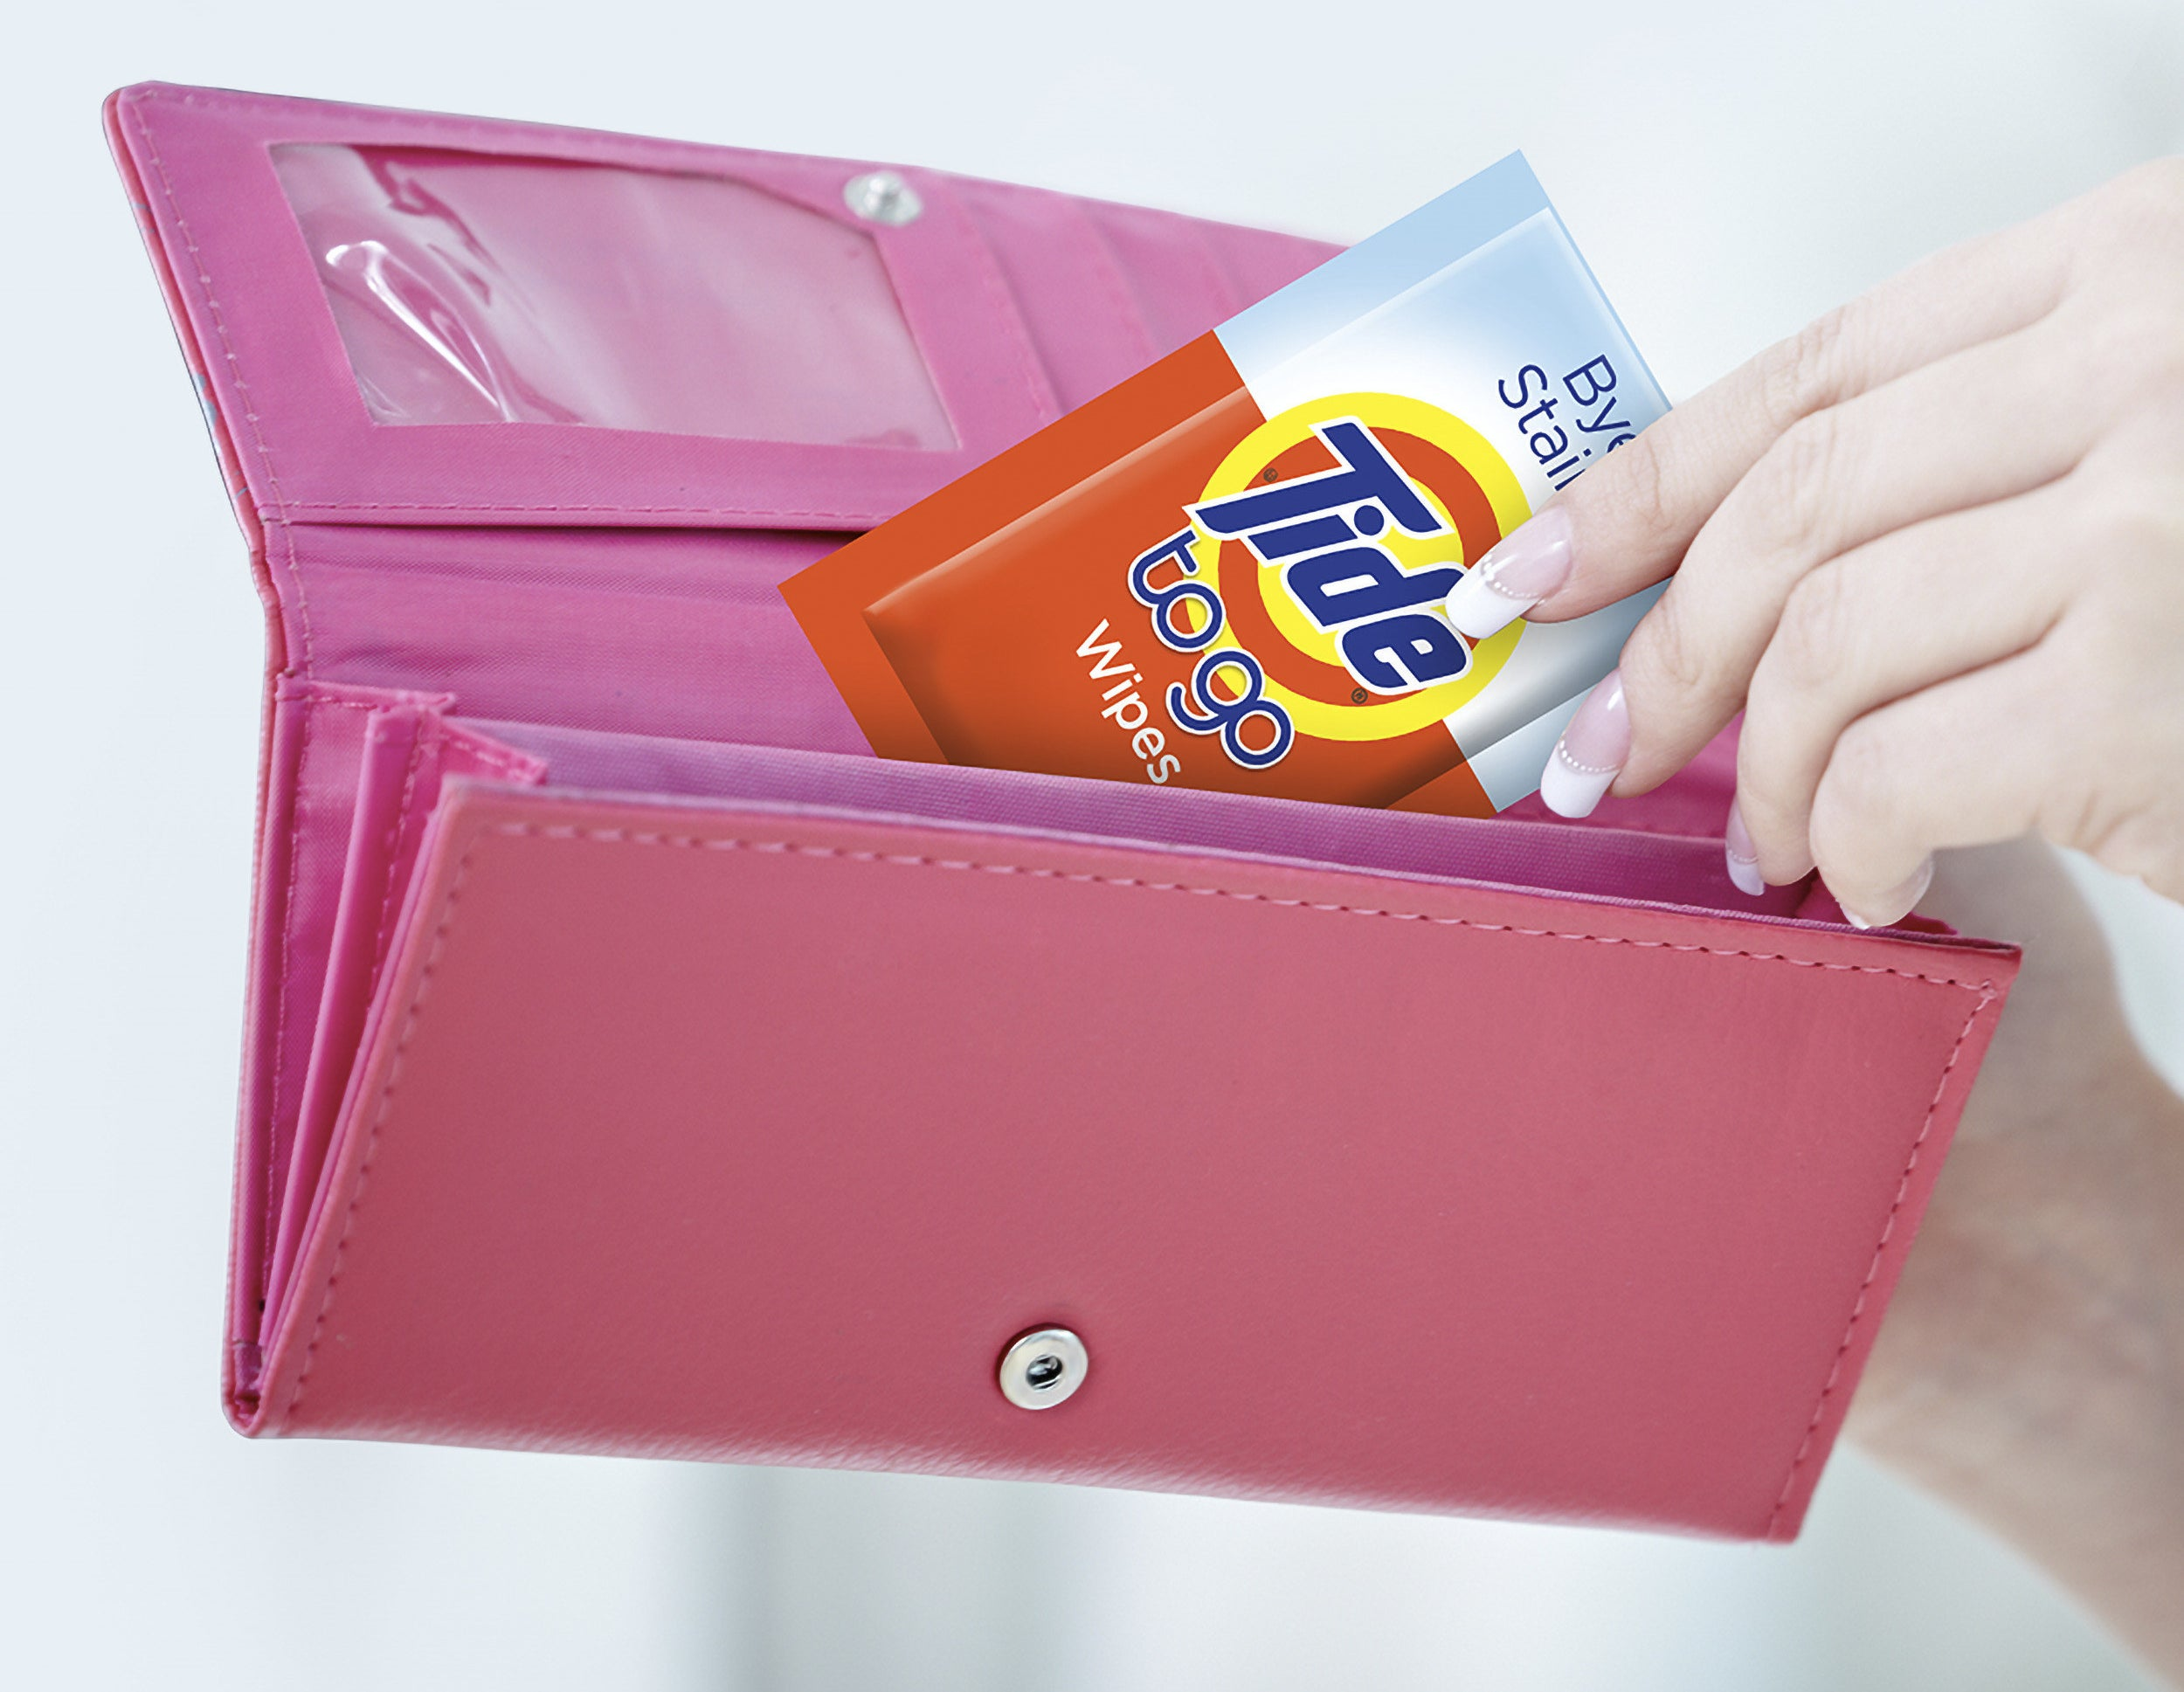 Person putting the wipes in their wallet